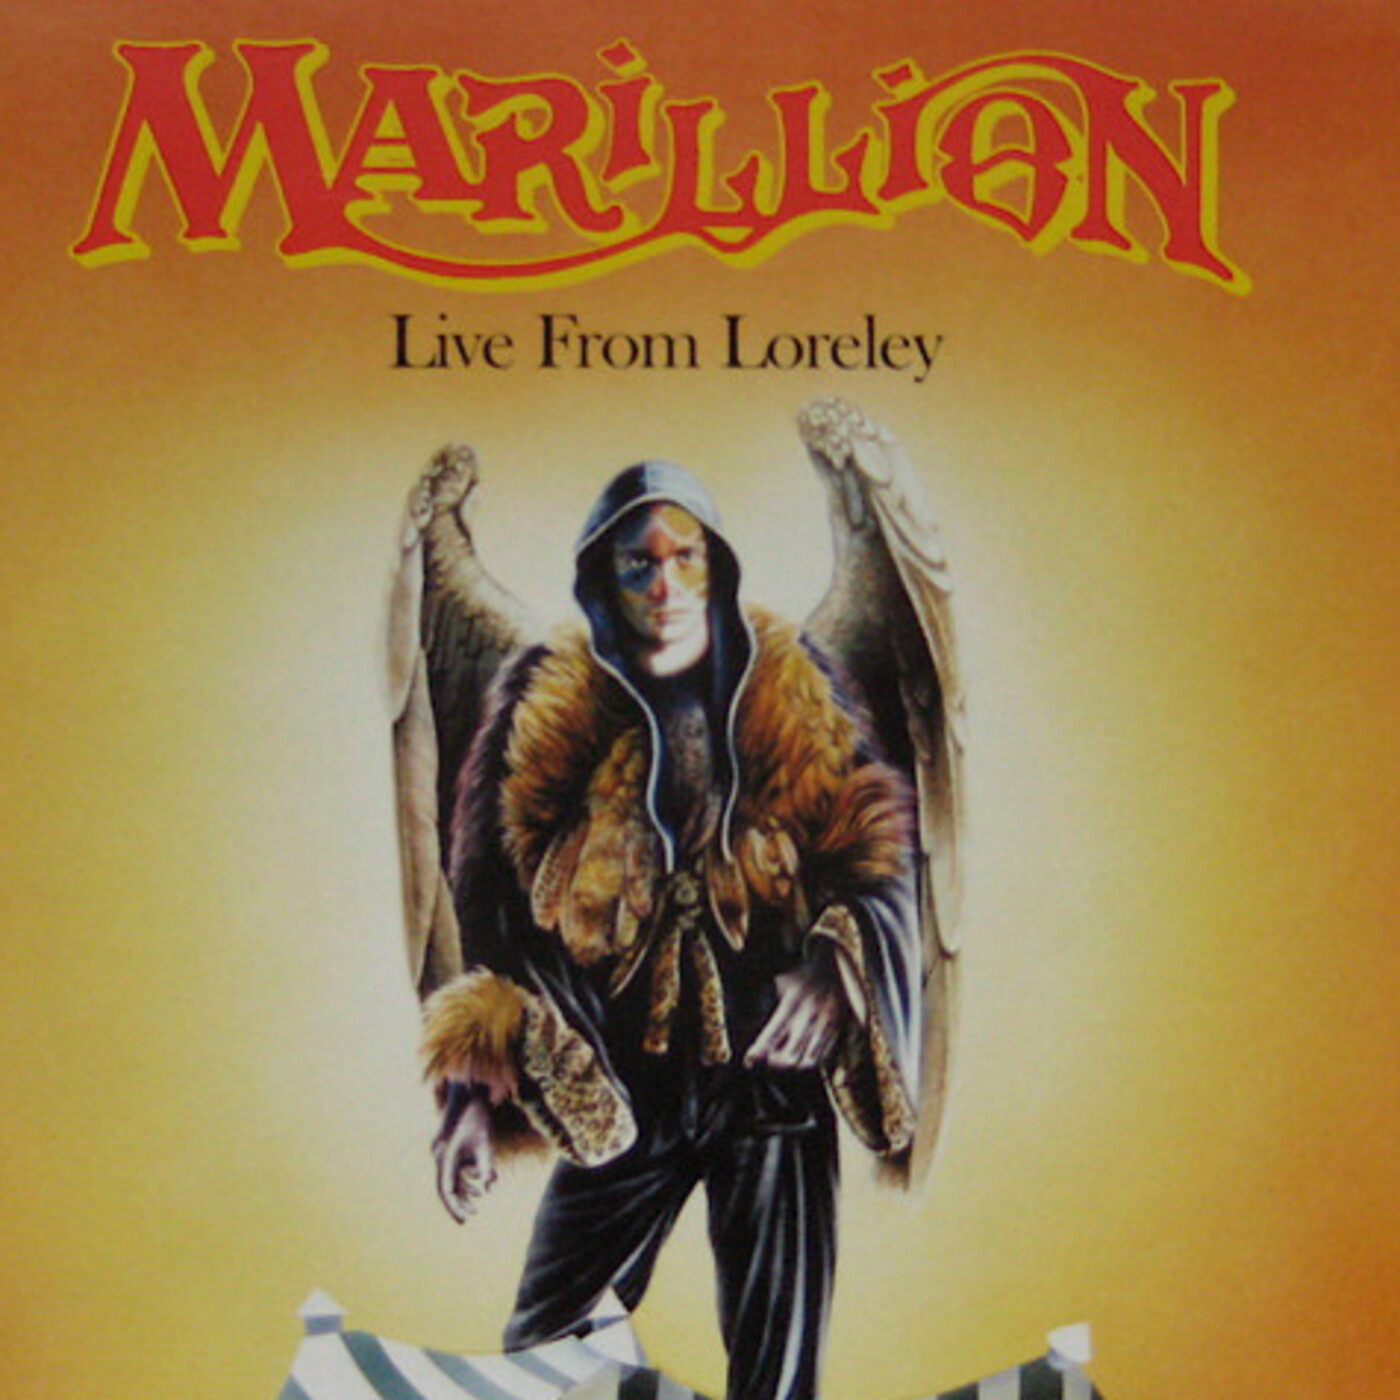 319 - Marillion ‎– Live From Loreley (1987)